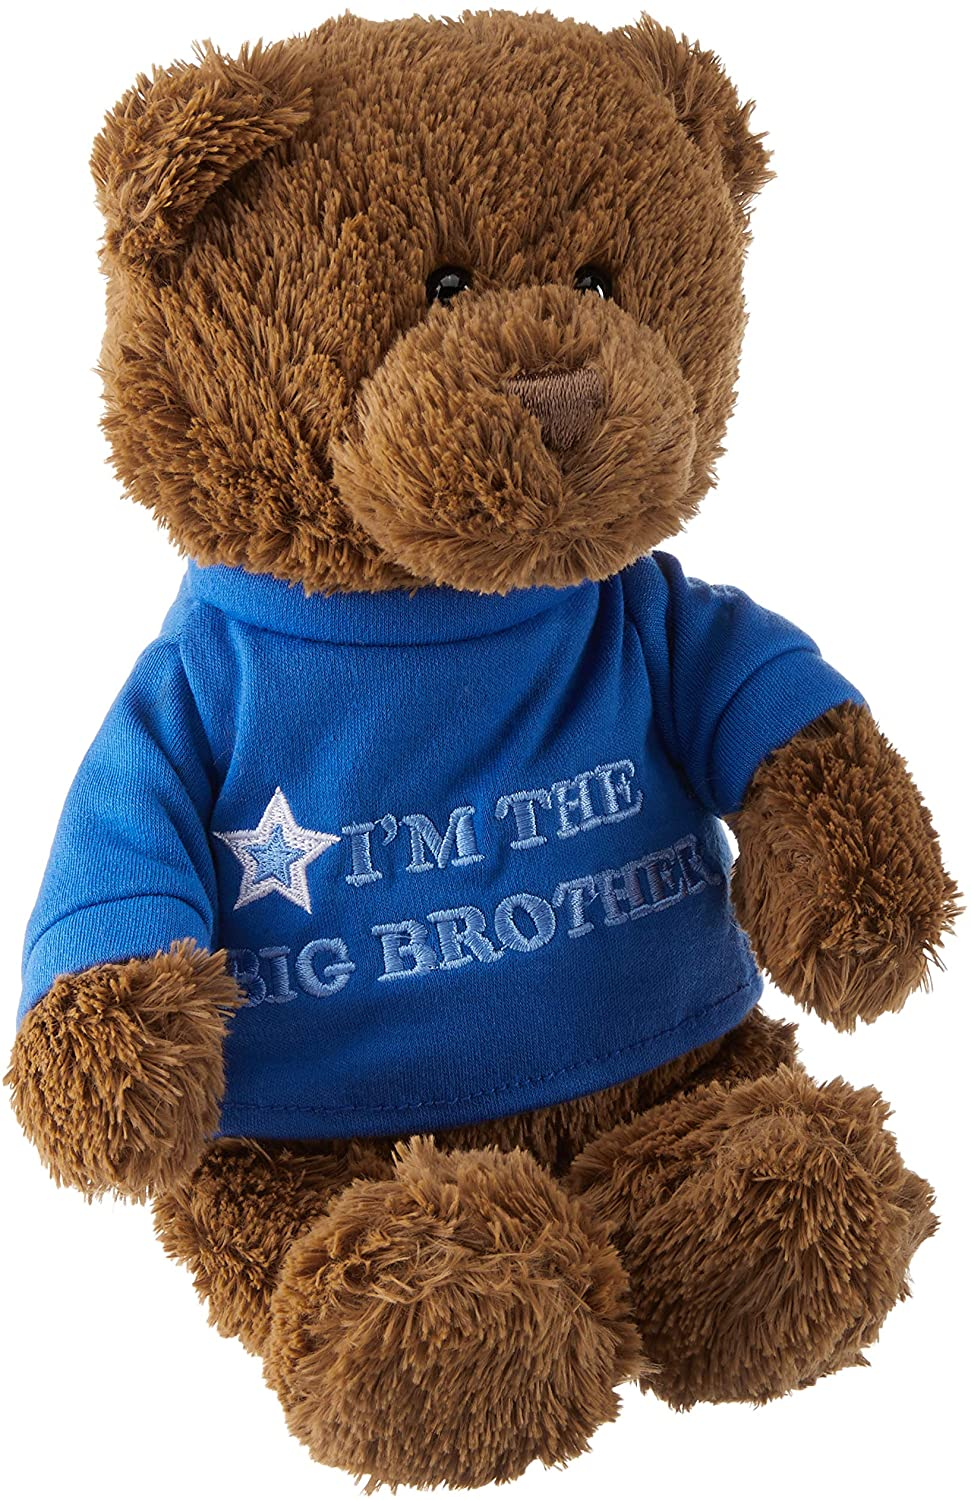 Gund Big Brother Bear, 12inches